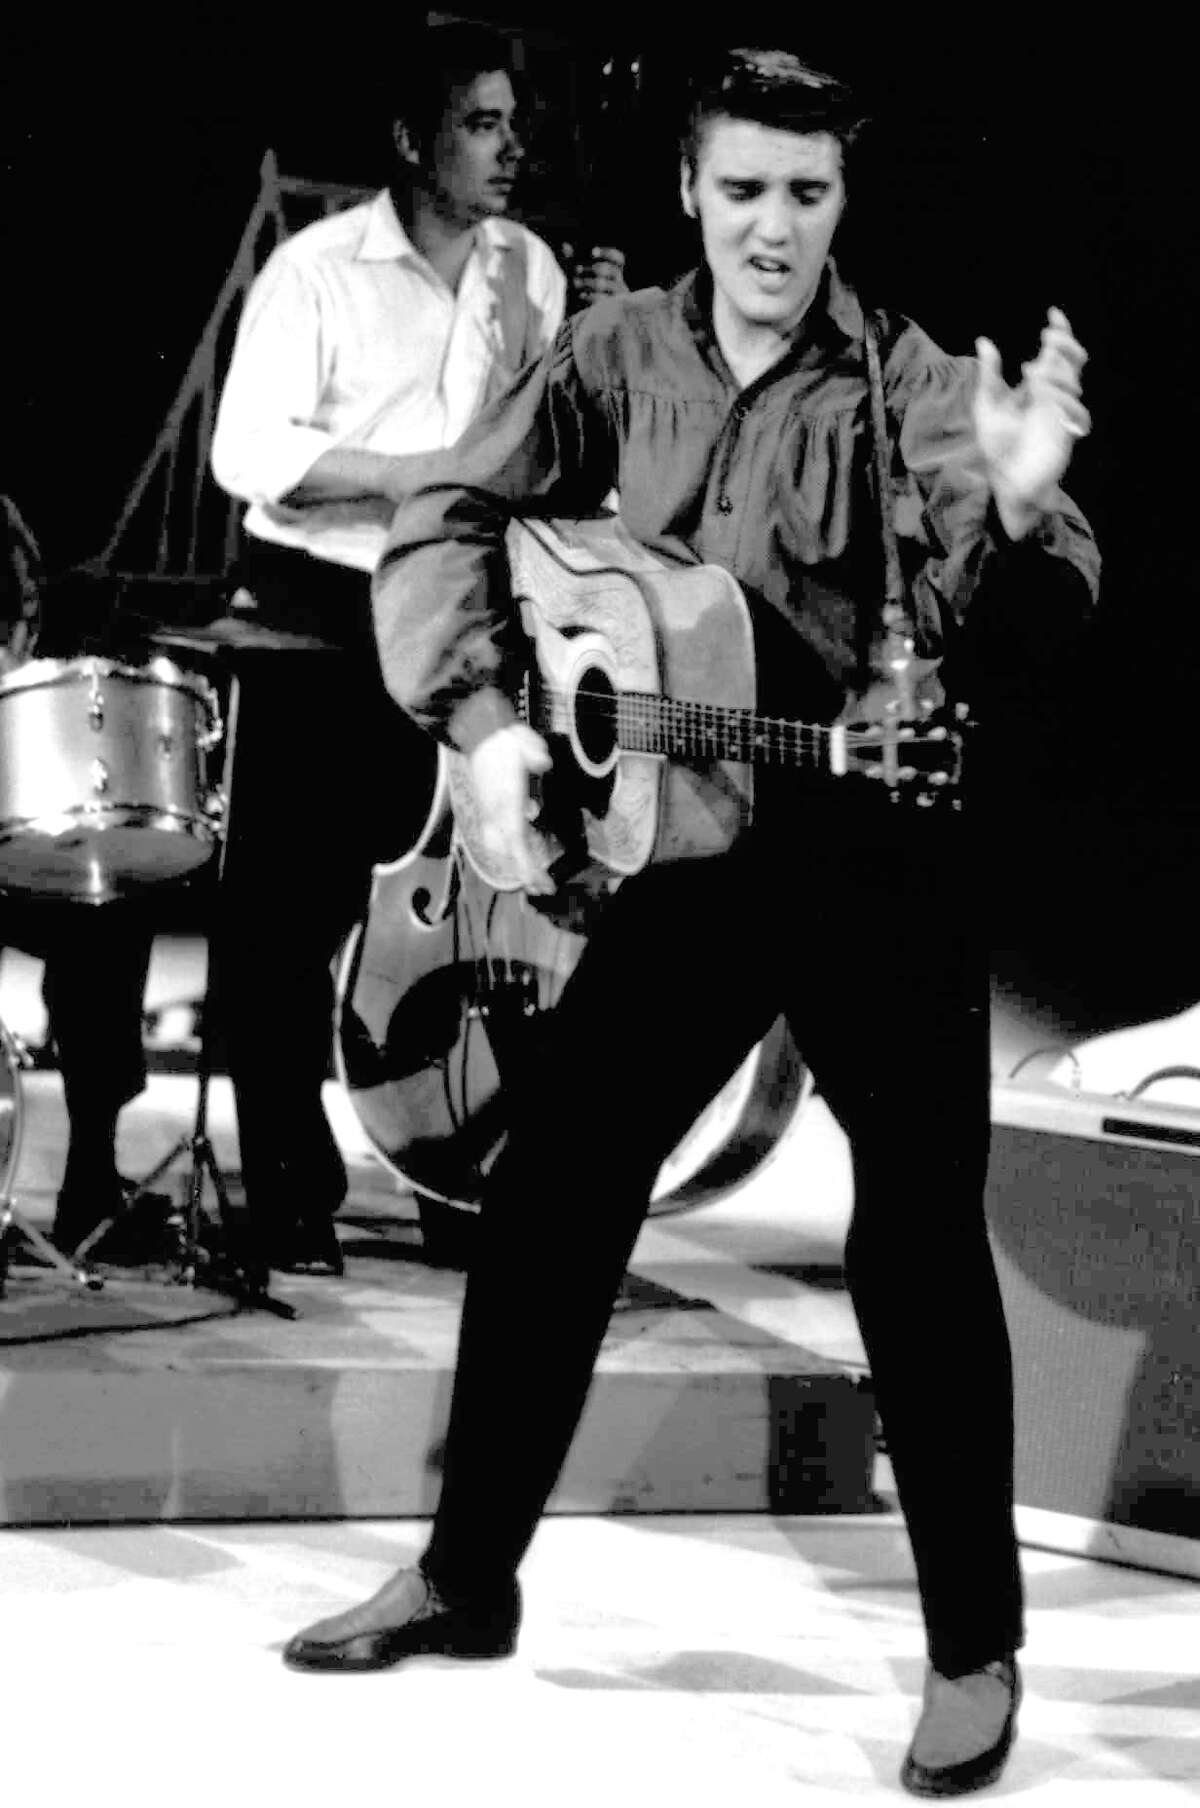 """FILE - In this Sept. 9, 1956 file photo originally released by the Museum of Television & Radio, Elvis Presley performs on the """"Ed Sullivan Show,"""" in New York. (AP Photo/Museum of Television & Radio, file)"""